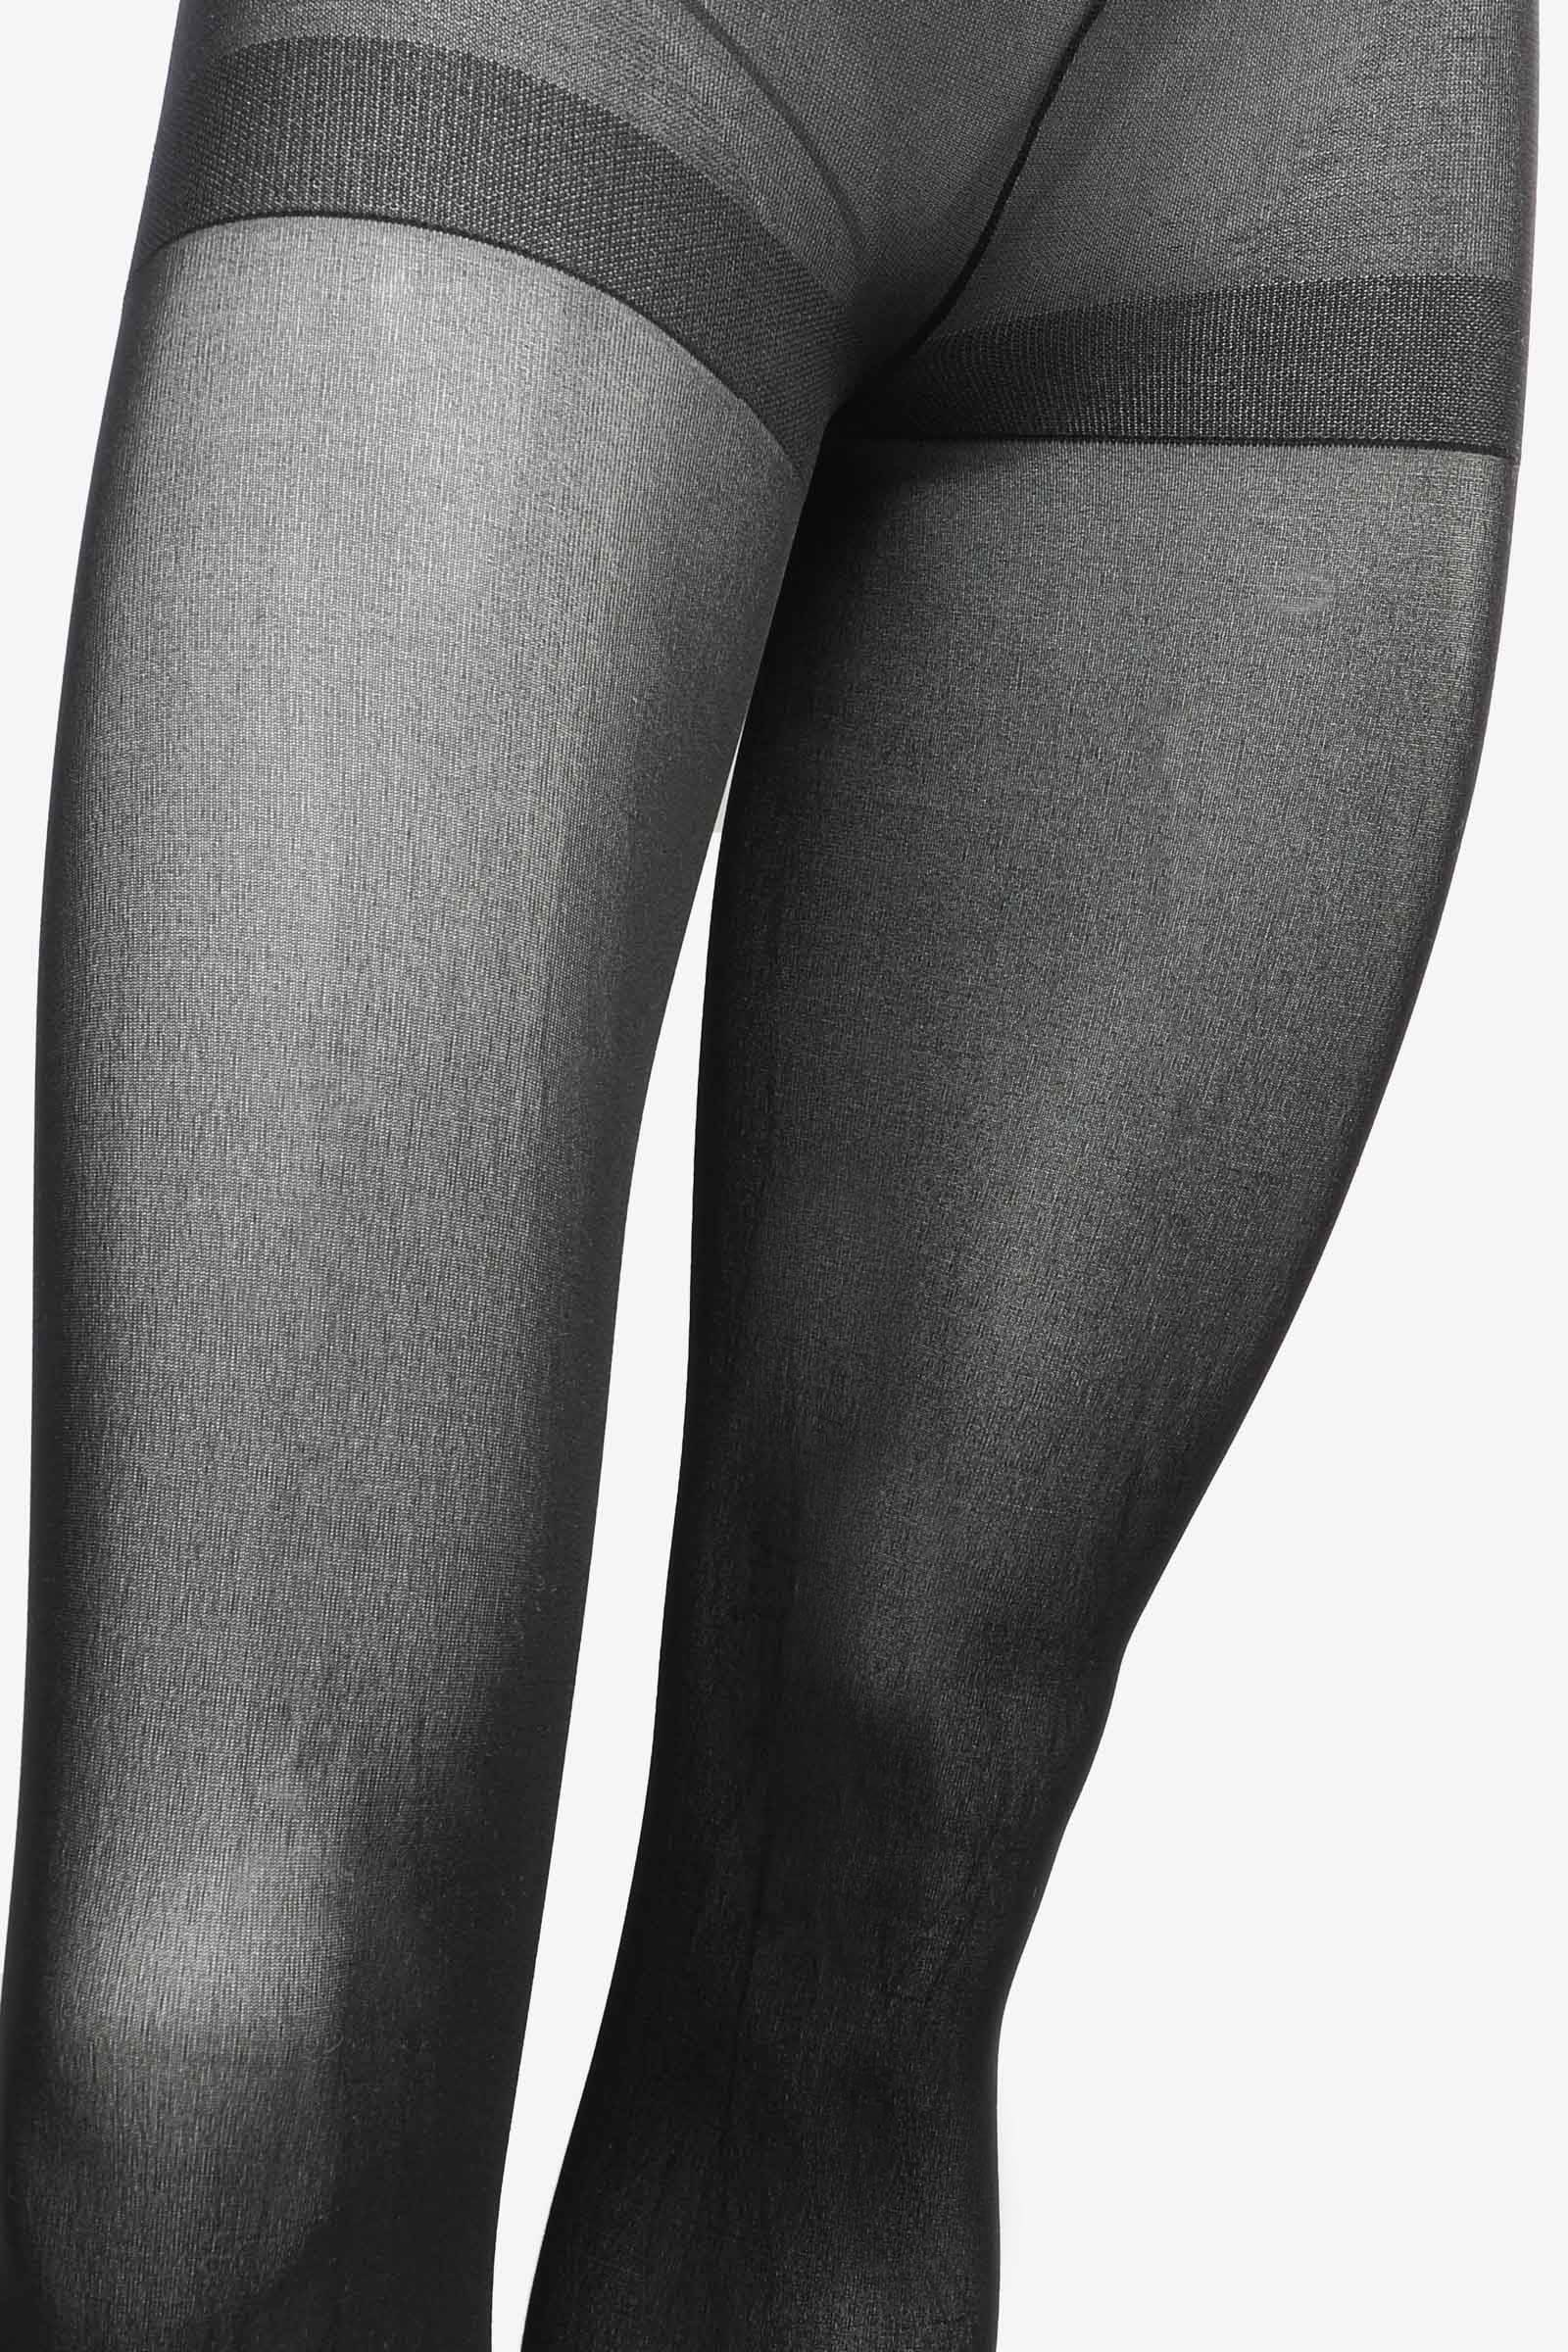 Semi-Opaque Tights with Control Top